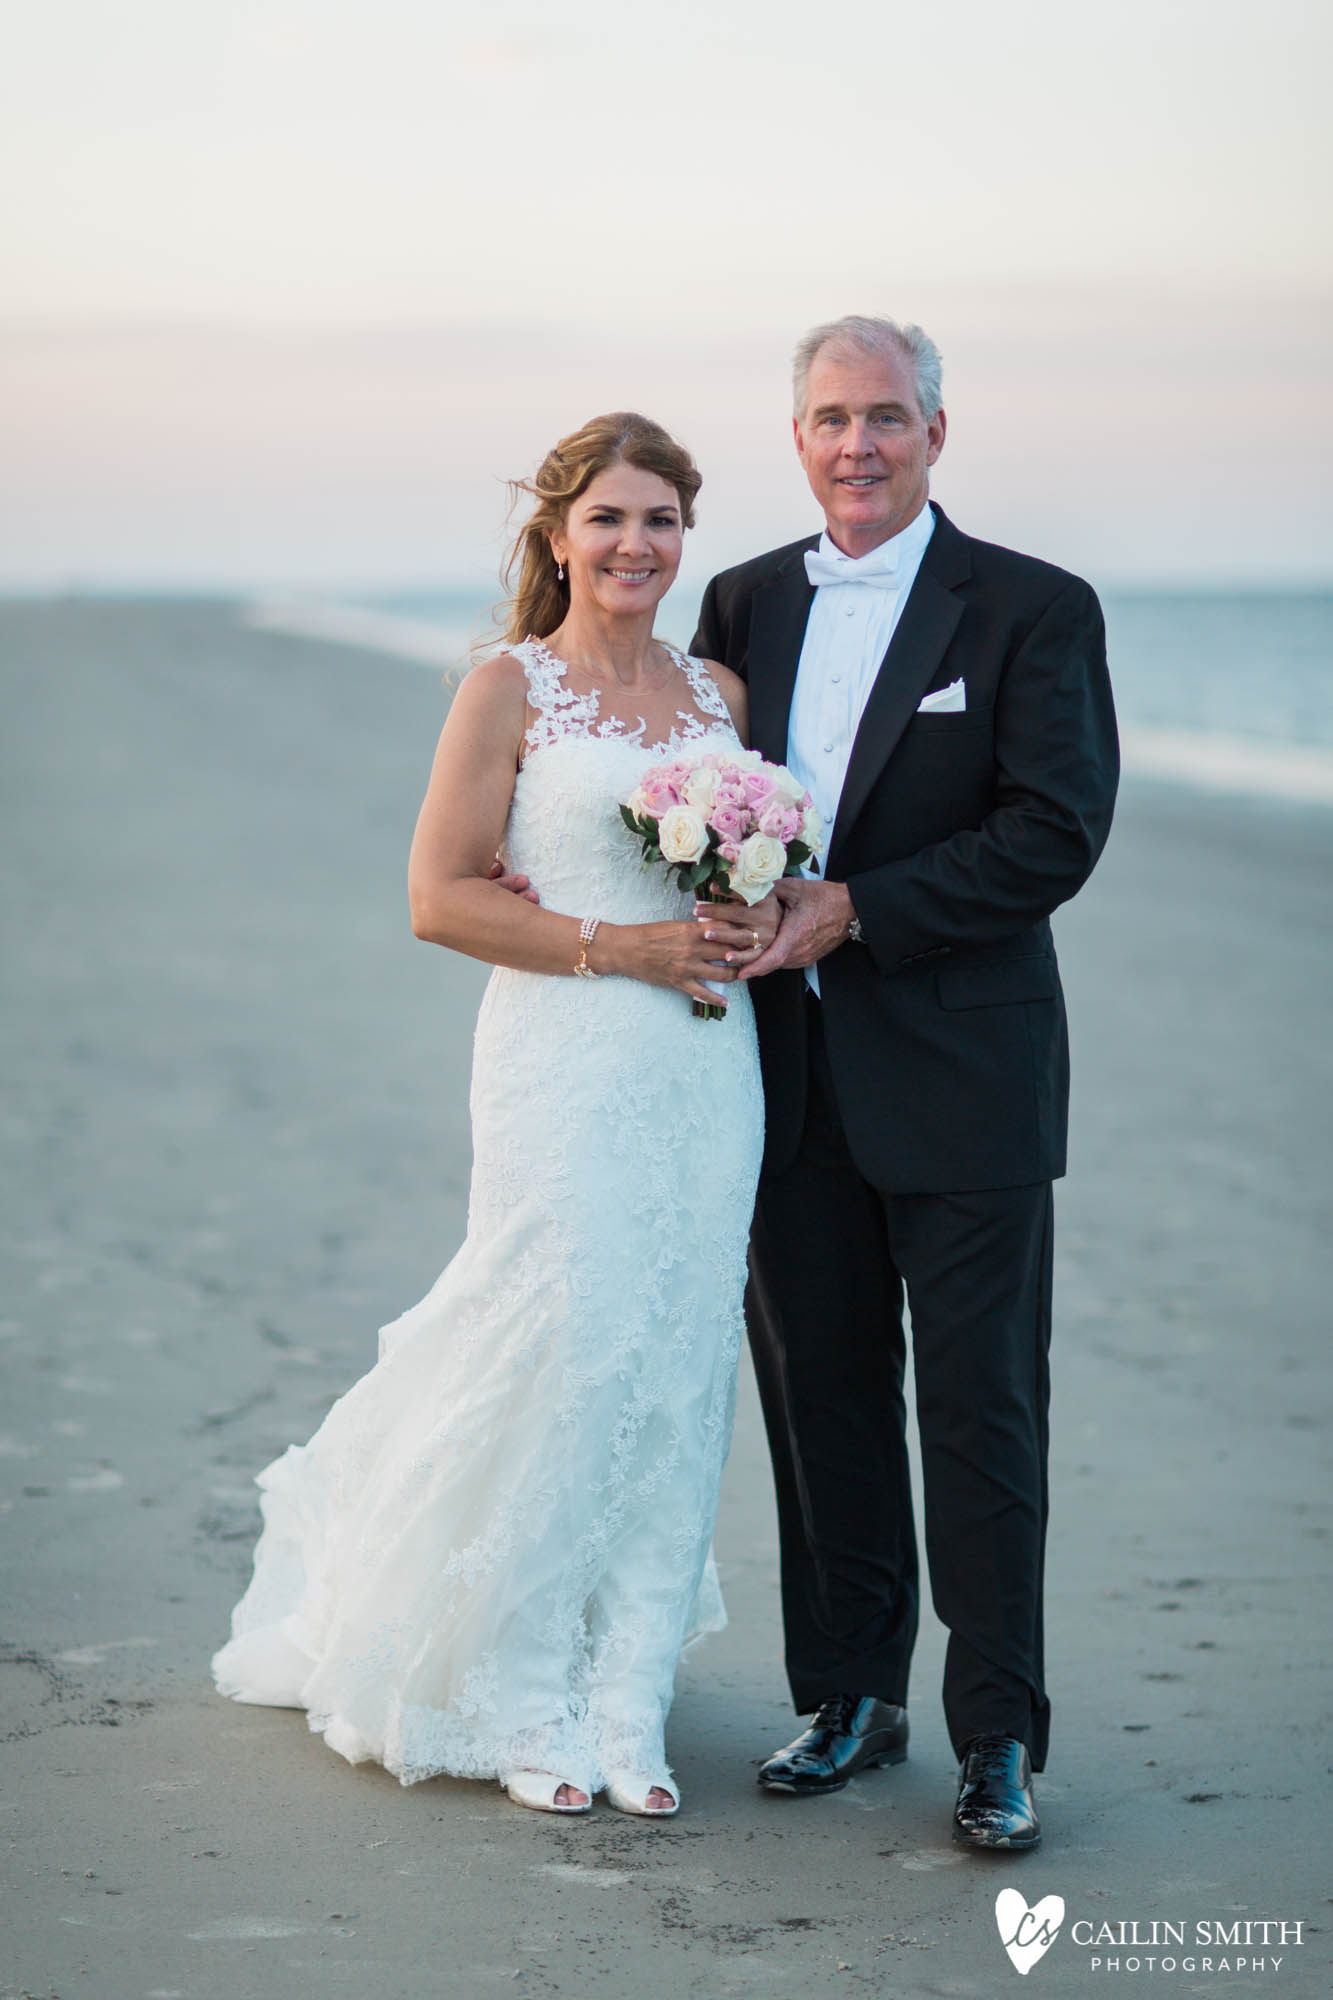 Kalina_Andy_Jekyll_Island_Westin_Hotel_Wedding_Photography_0049.jpg